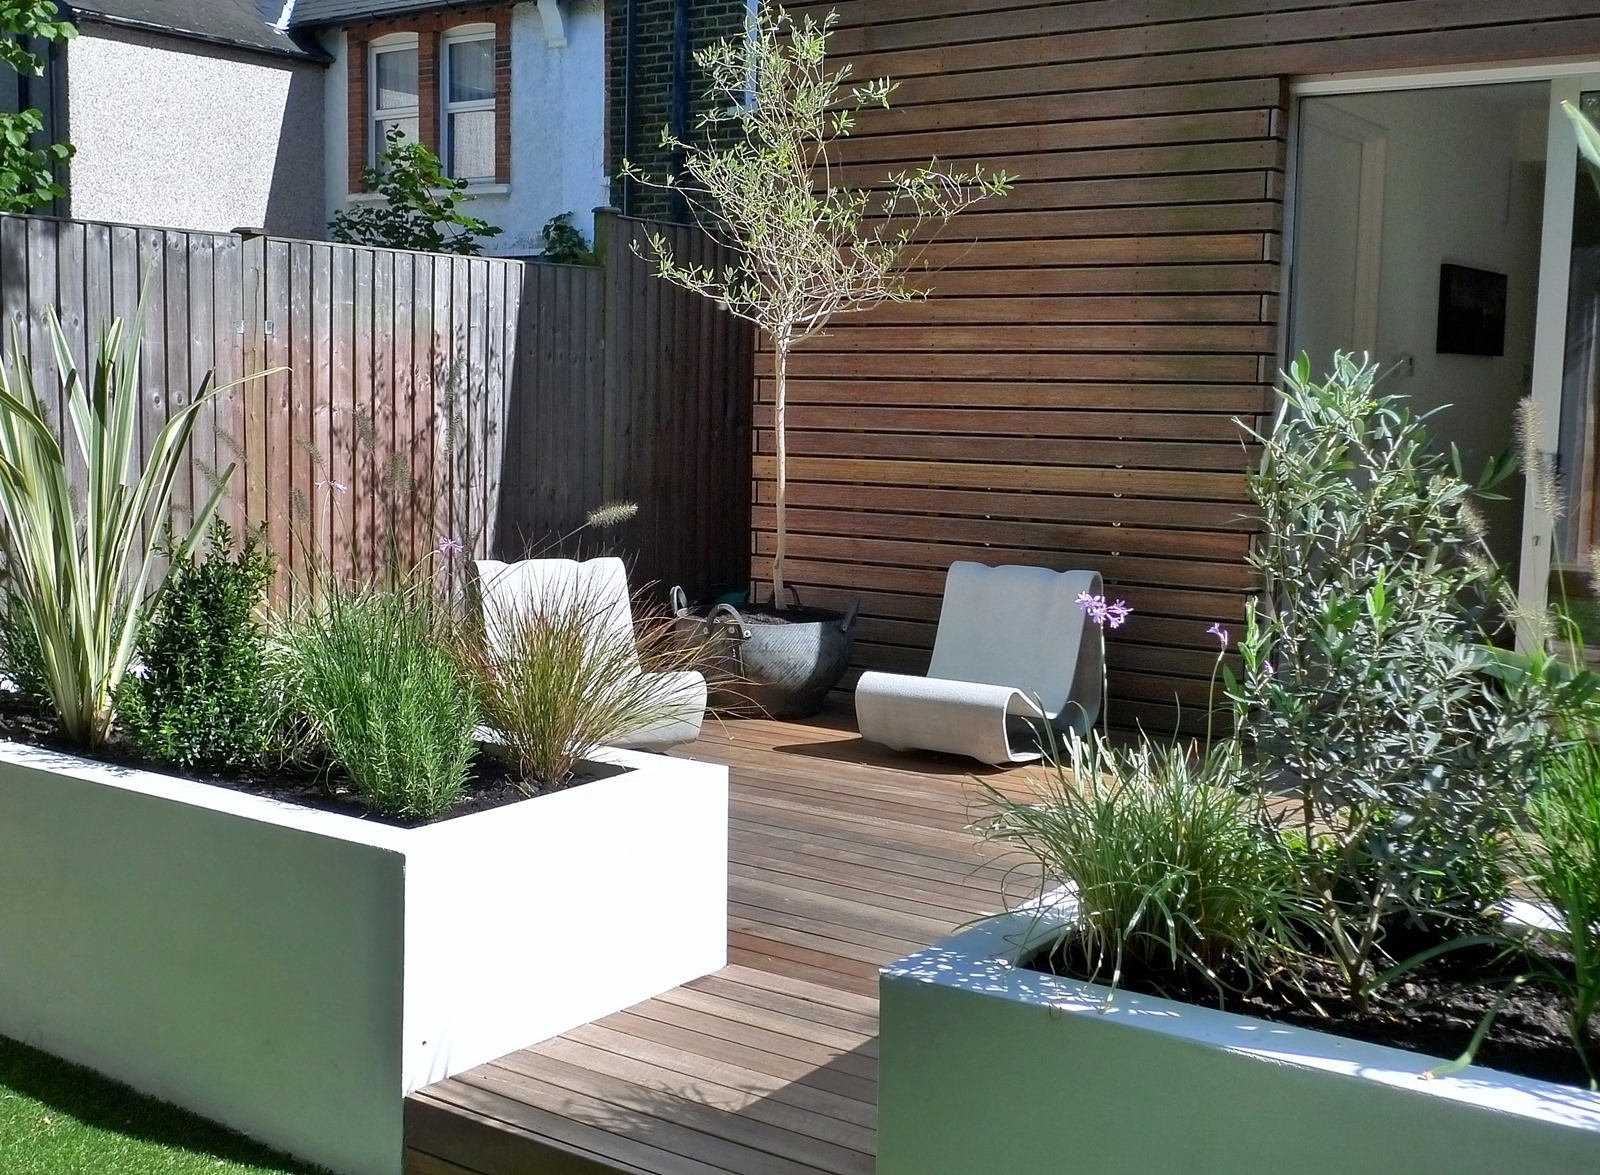 clapham and balham modern garden design decking planting artificial lawn grass hardwood privacy screen indoor outdoor space (13)